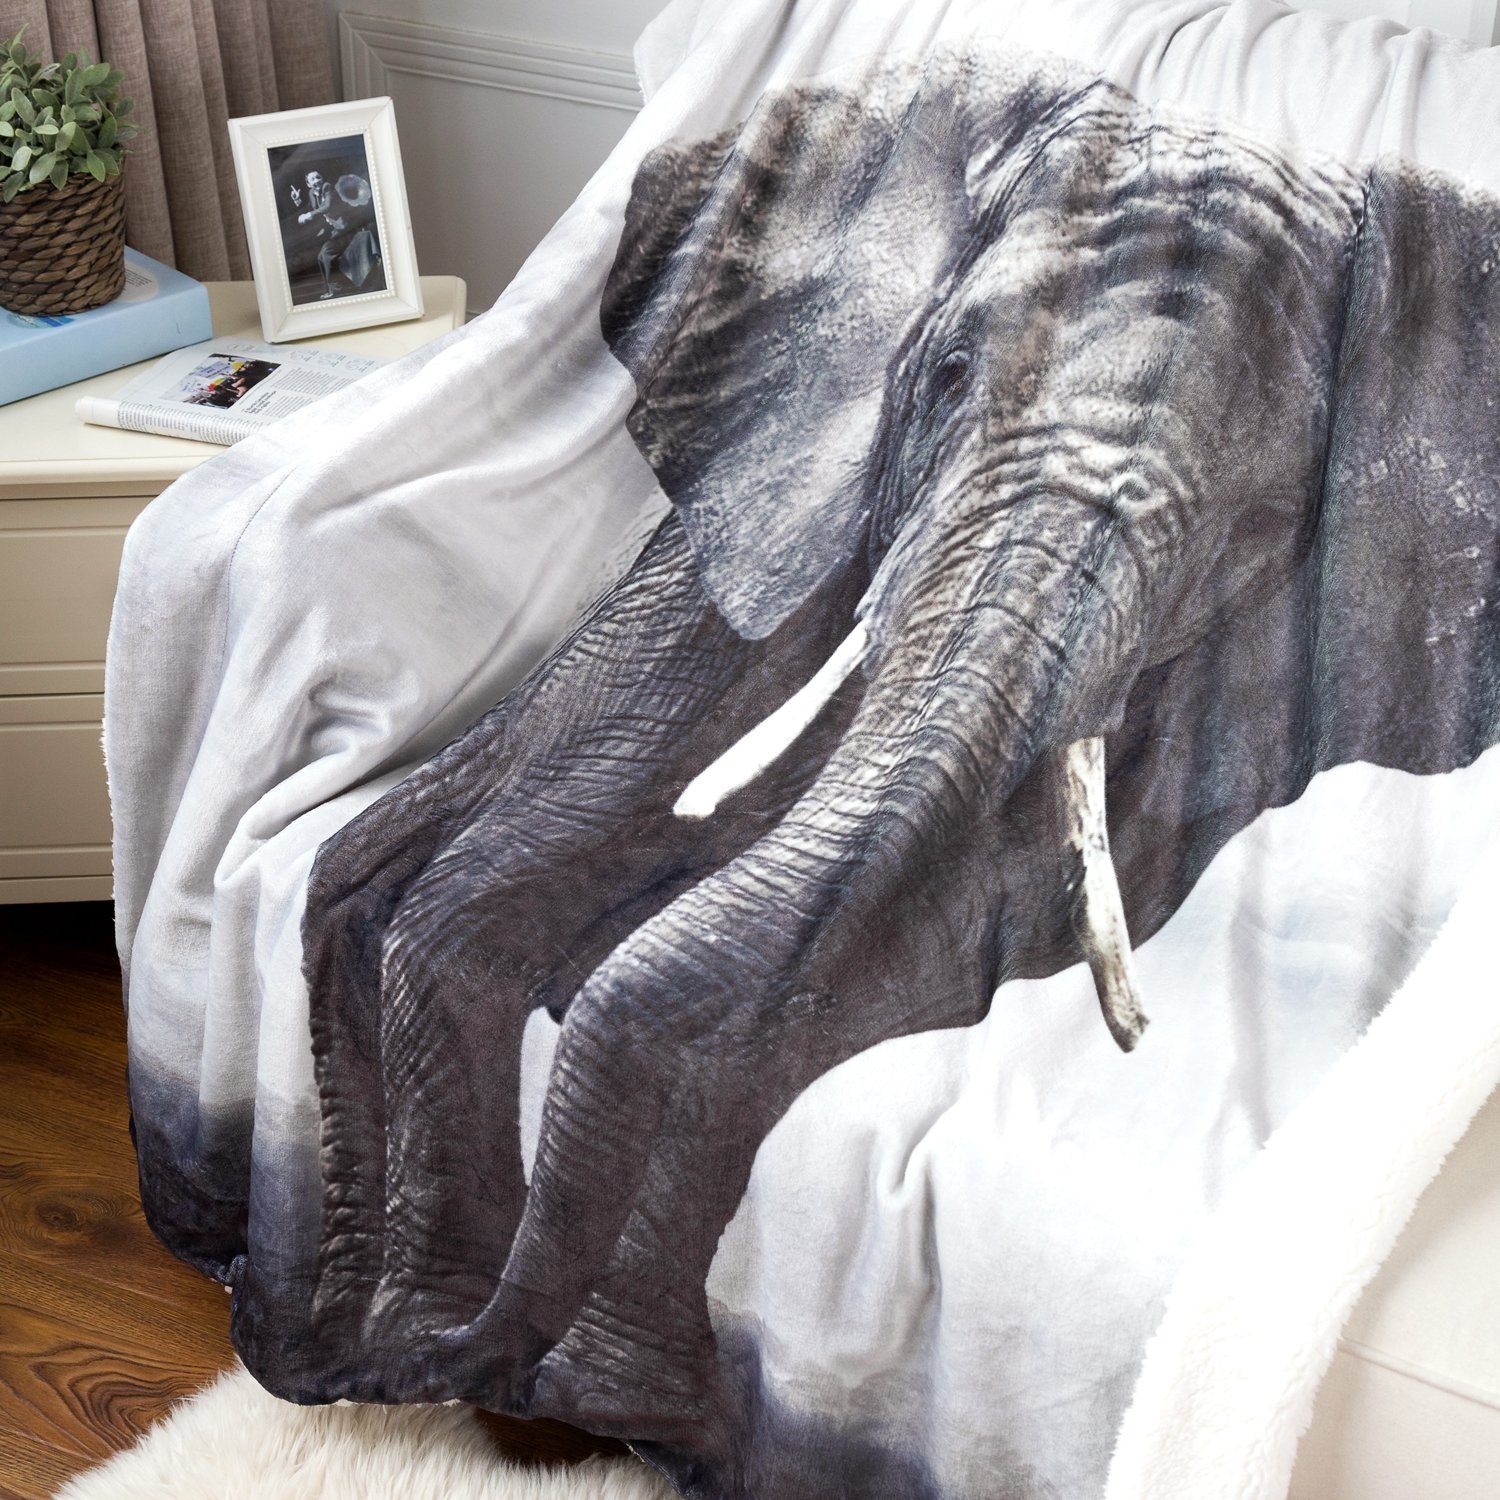 Bedsure Elephant Sherpa Throw Blanket Animal Bedding Blanket 50x60 Reversible Throw Fuzzy Microfiber Blanket